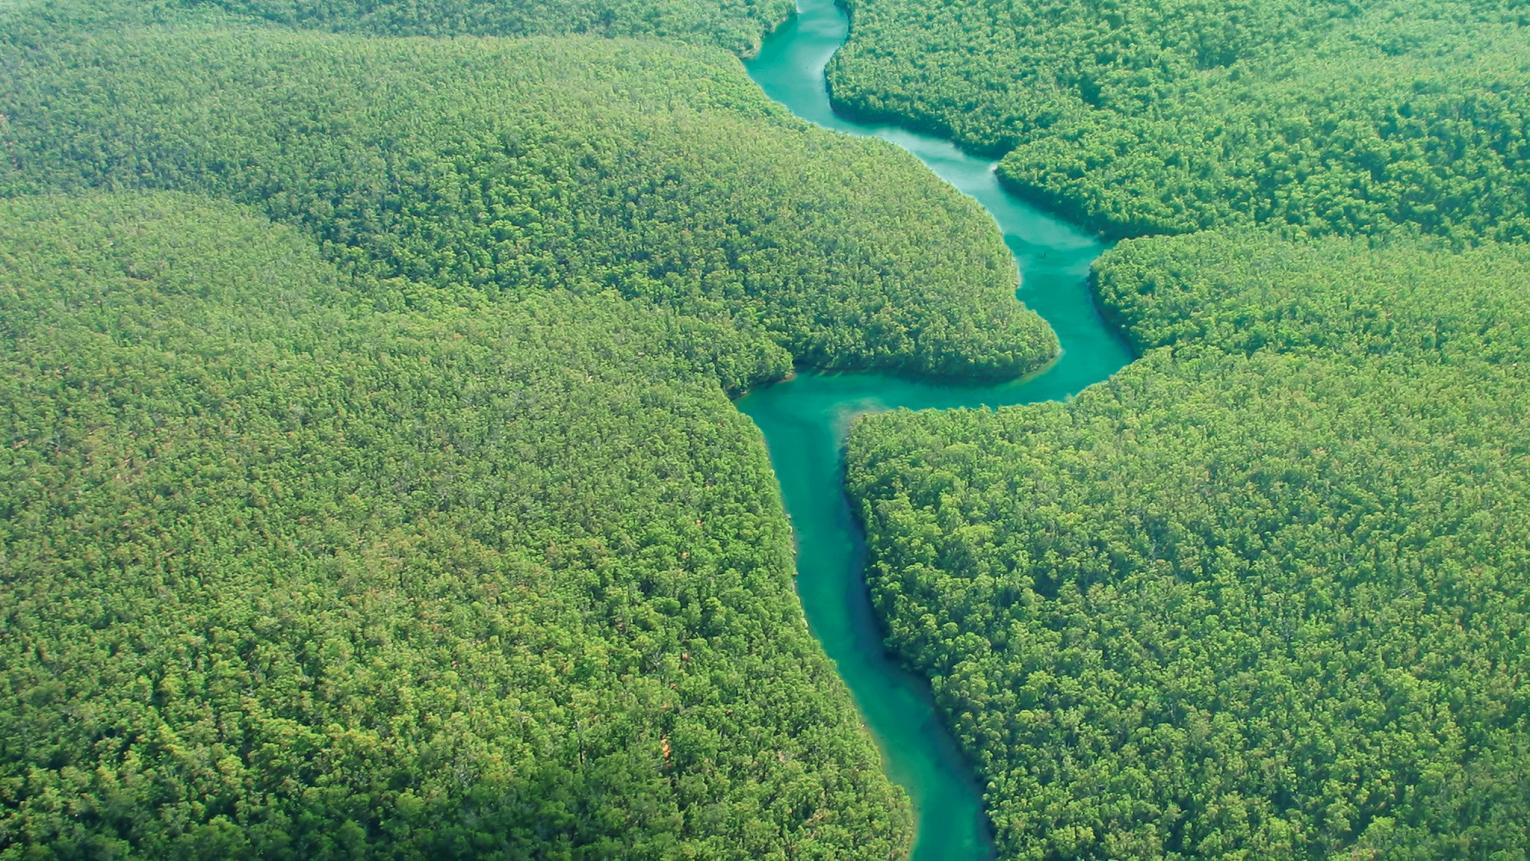 Birdseye view of dark green forest and sparkling blue water.